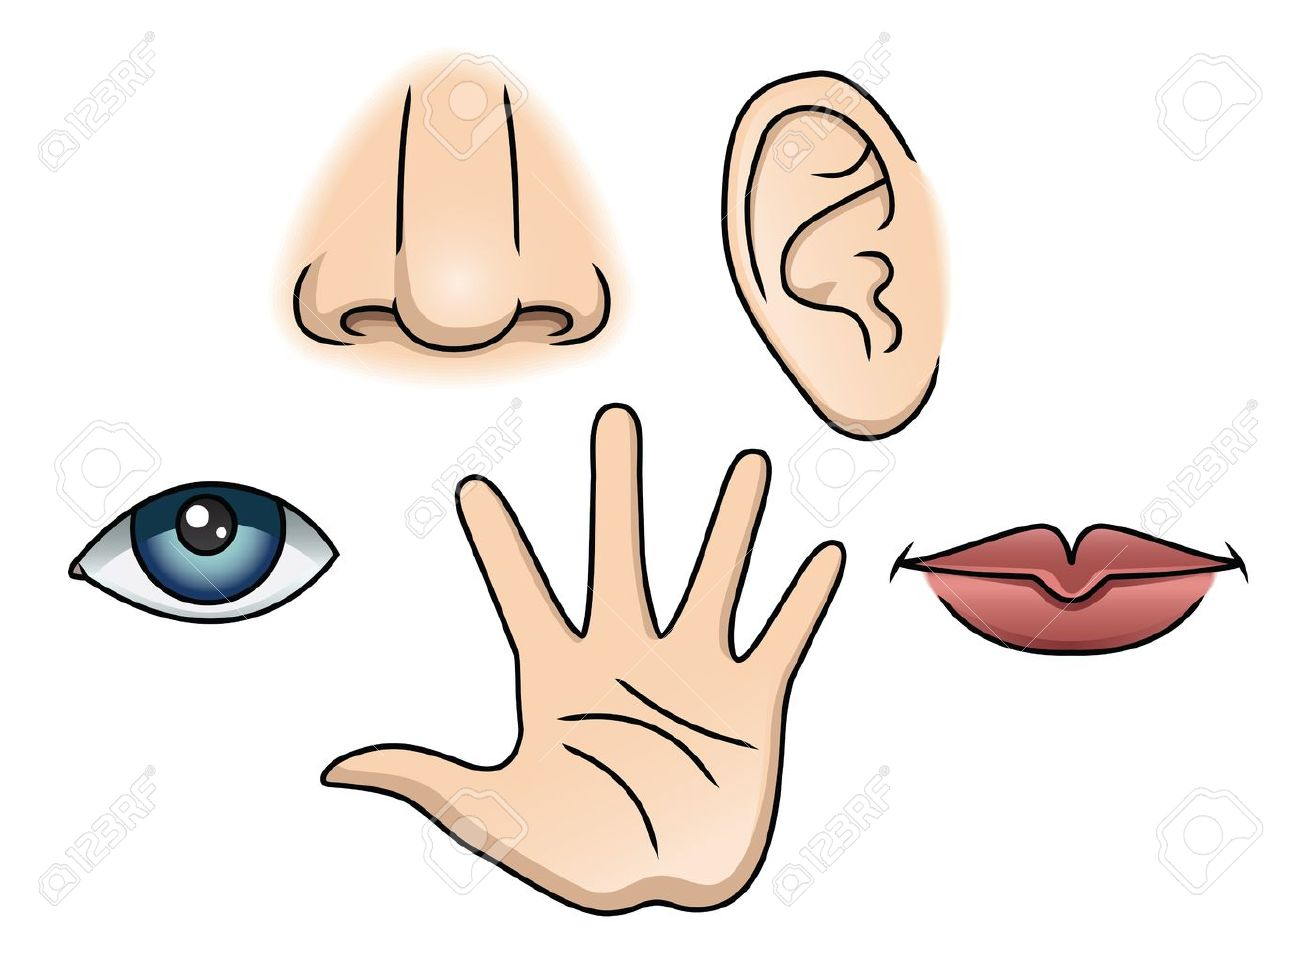 an illustration depicting the 5 senses royalty free cliparts rh 123rf com five senses clipart images five senses clipart